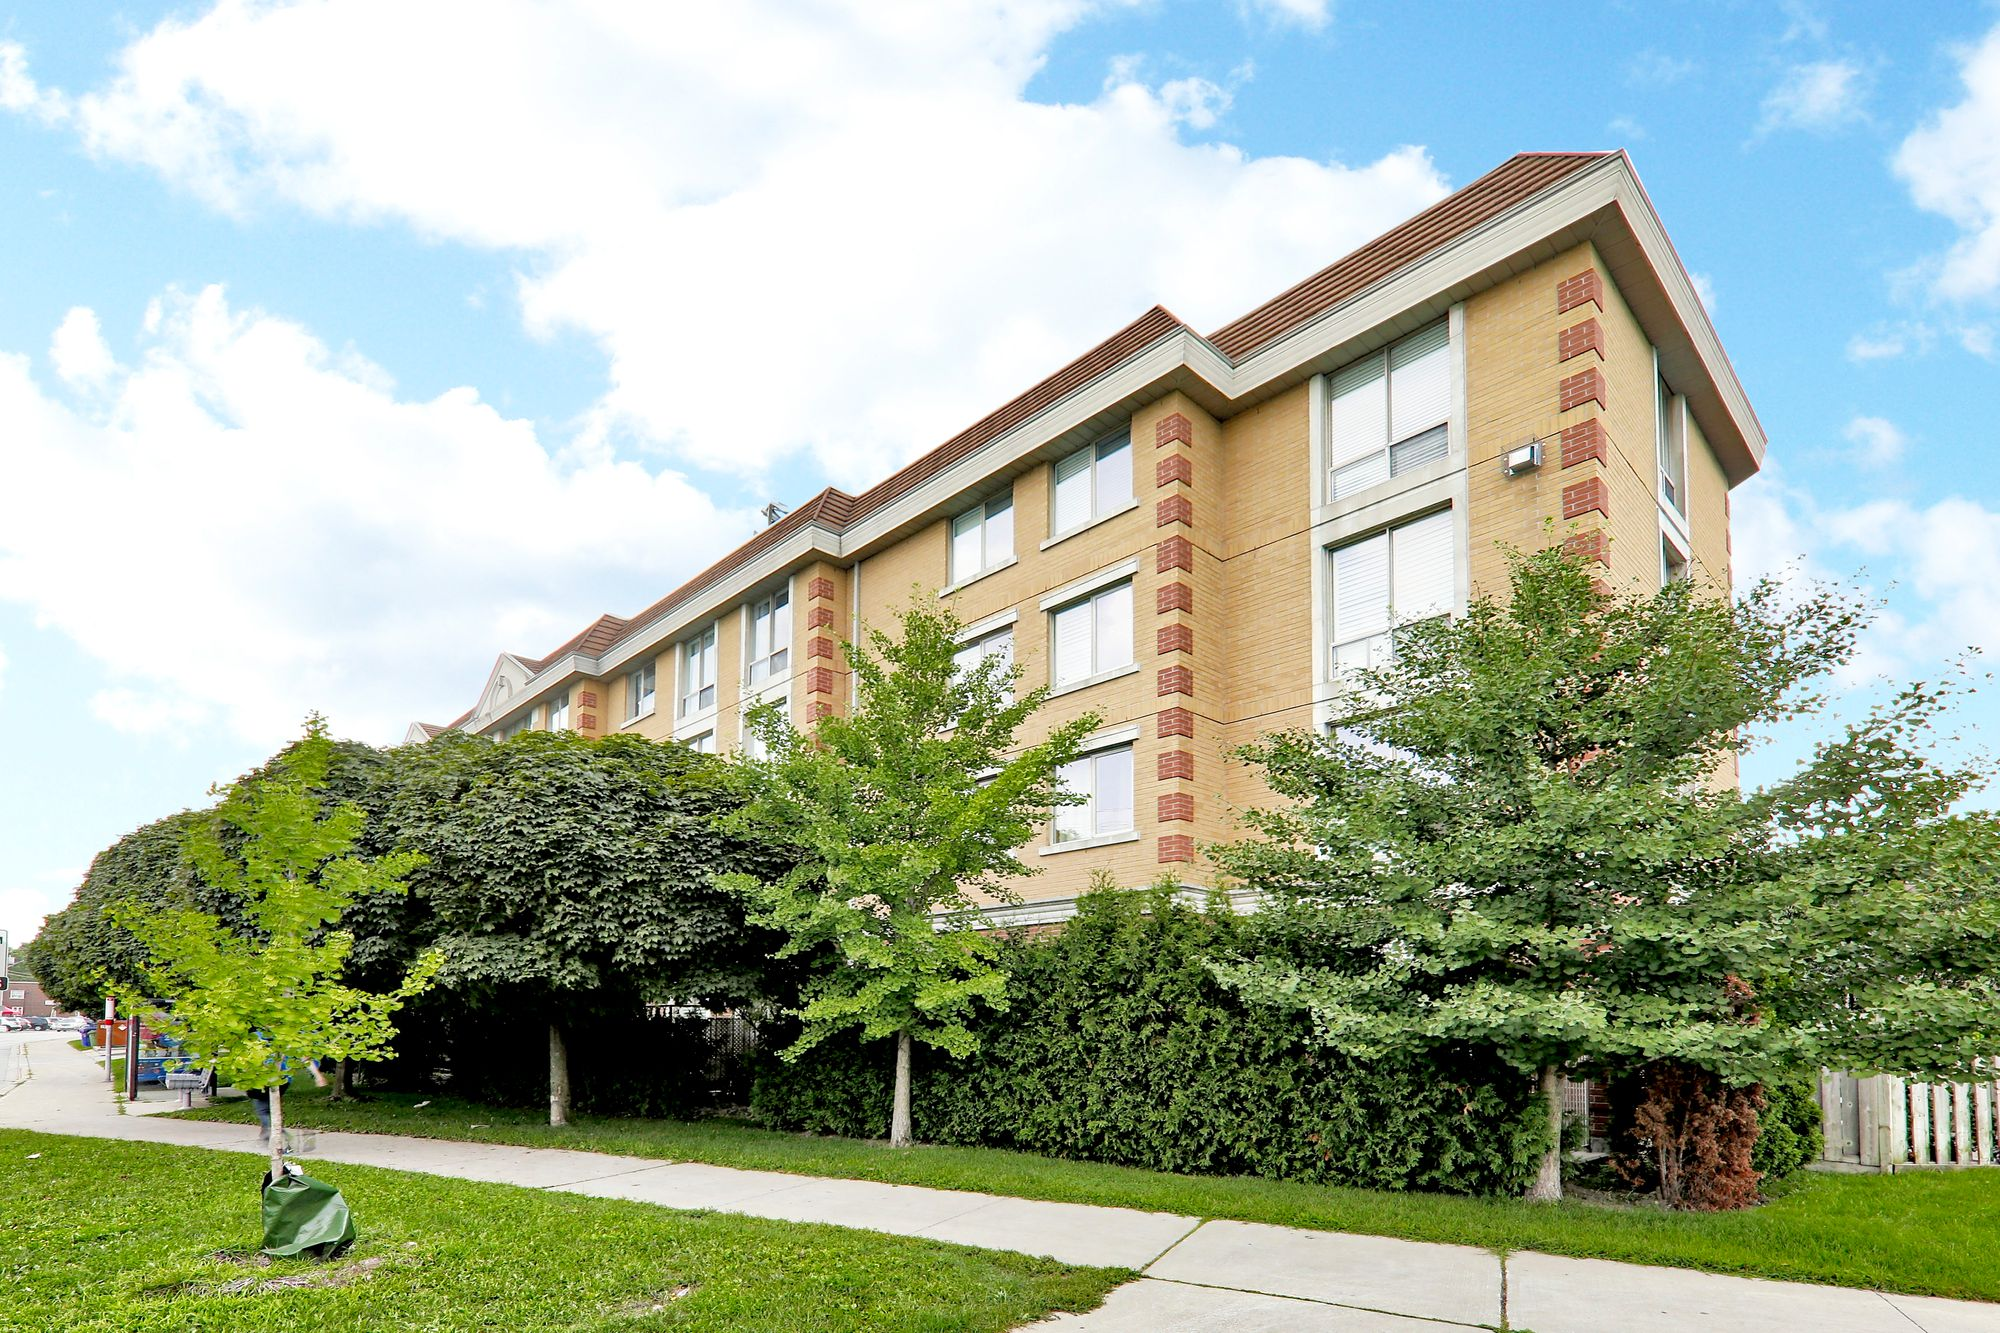 211 Randolph Rd. This condo townhouse at Leaside Mews is located in  East York, Toronto - image #1 of 4 by Strata.ca